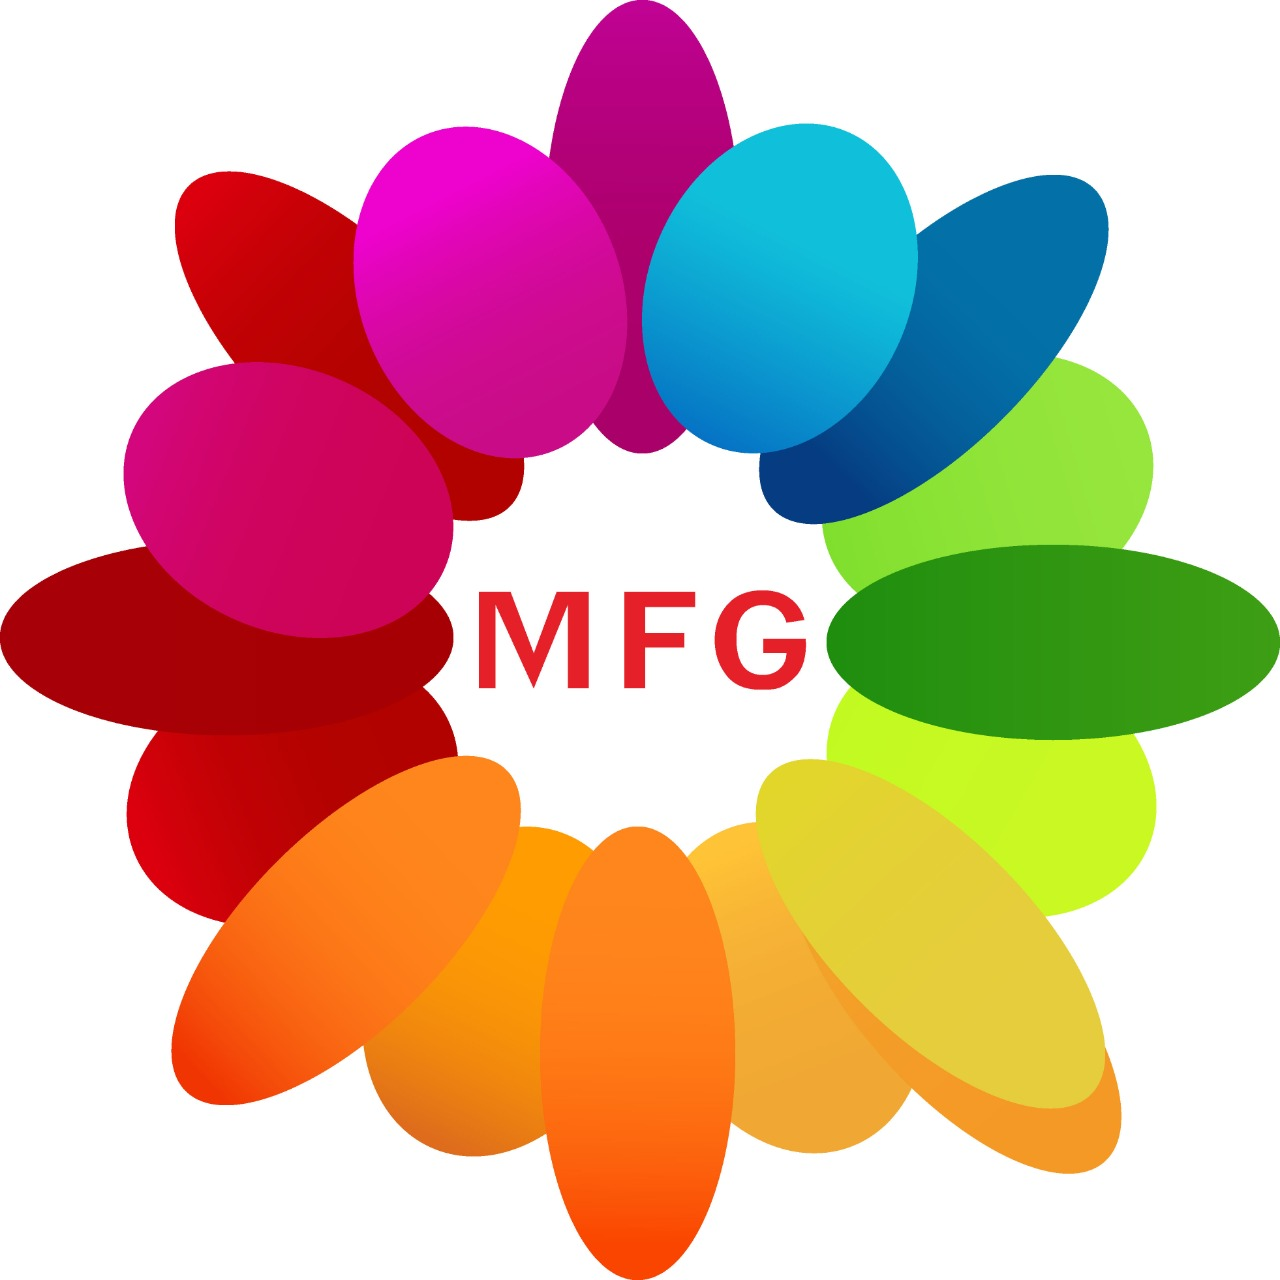 Bunch of 10 lavender orchids with 1 kg chocolate cake with 1 rakhi and roli chawal